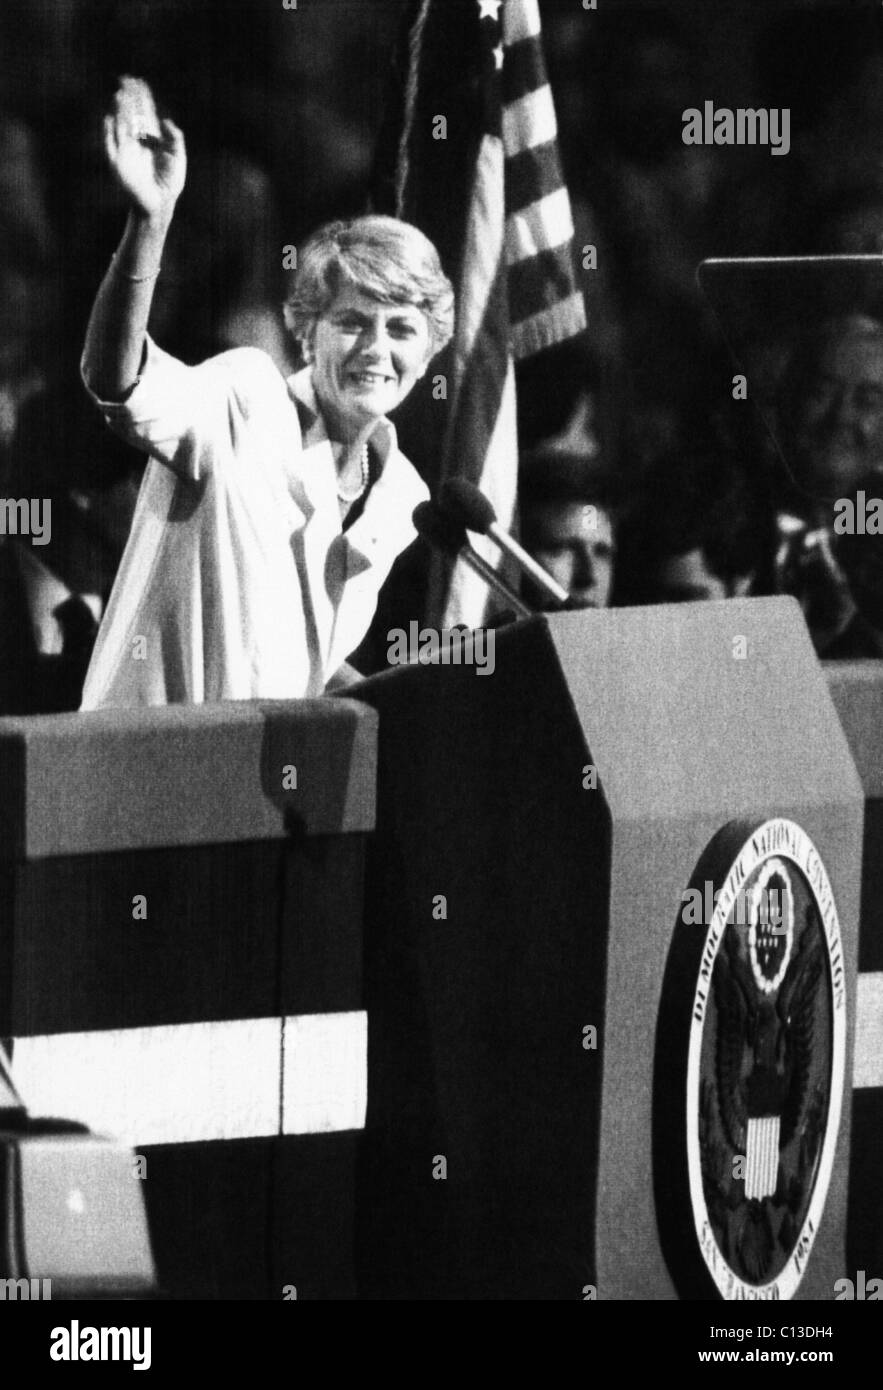 US Elections. US Congresswoman and vice presidential candidate Geraldine Ferraro making her acceptance speech at - Stock Image